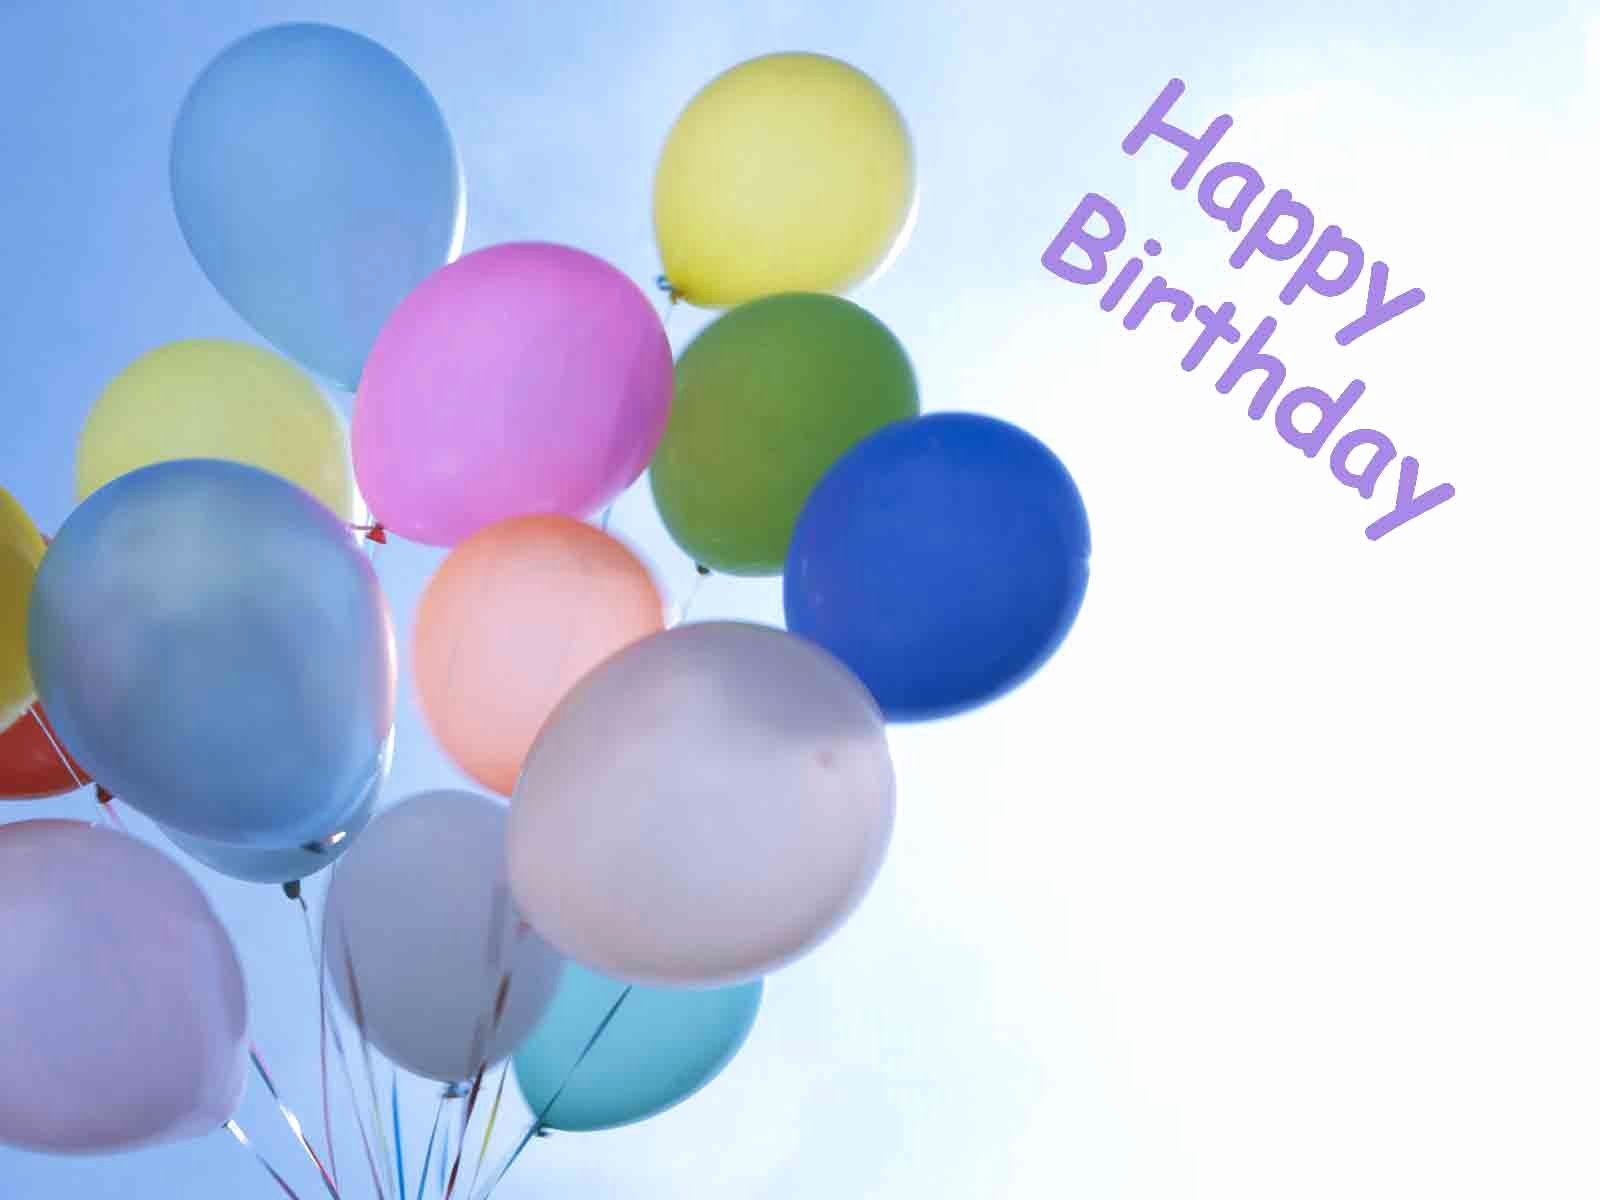 Happy Bday Wallpapers Free Awesome Free Happy Birthday Wallpapers Wallpaper Cave